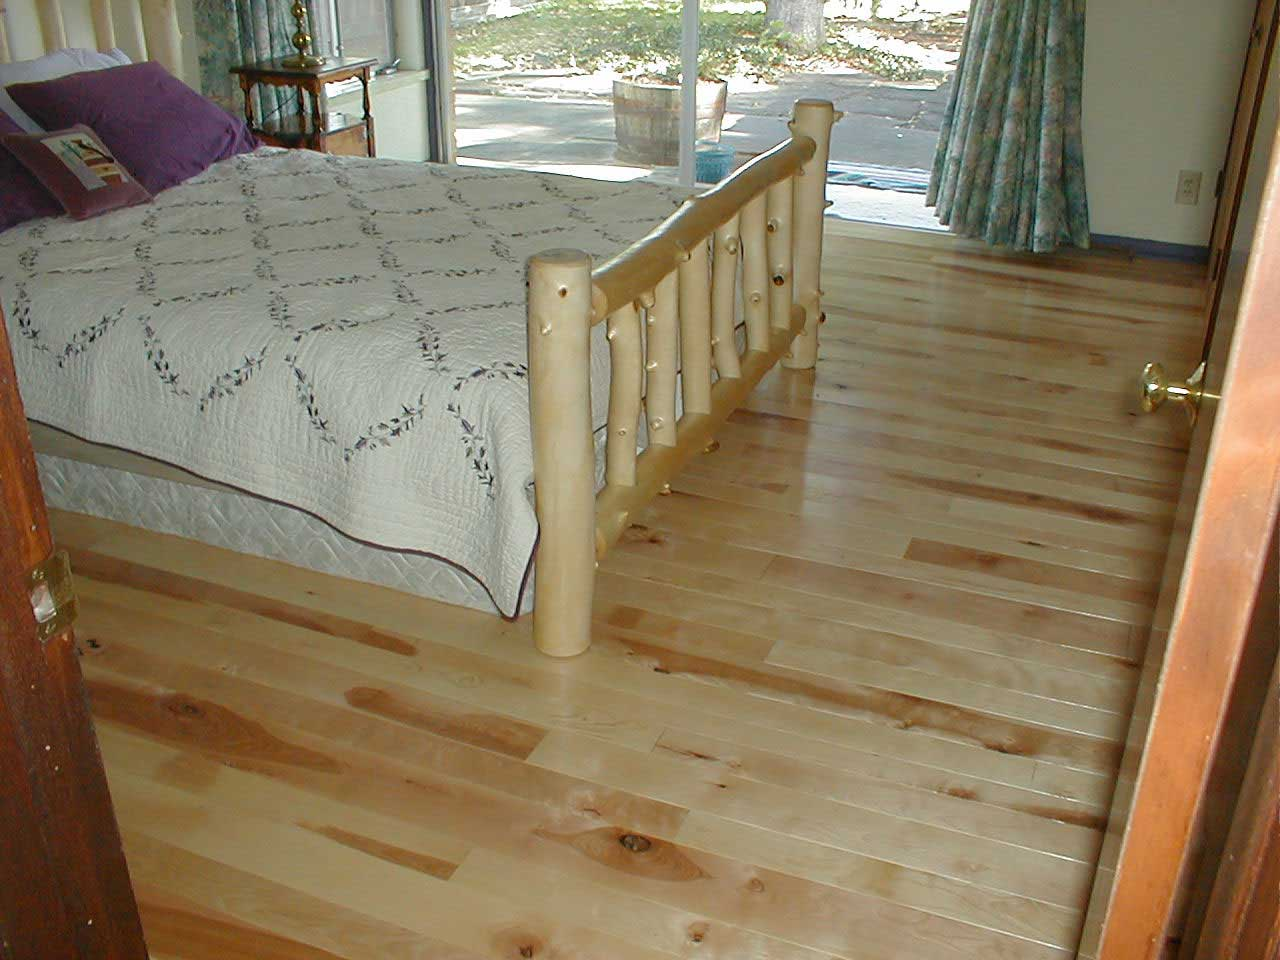 Birch Hardwood Flooring for a contemporary feel look for birch hardwood floors with a lighter color and higher gloss level for a more rustic look choose birch hardwood flooring Timberknee Ltd Yellow Birch Flooring Gallery